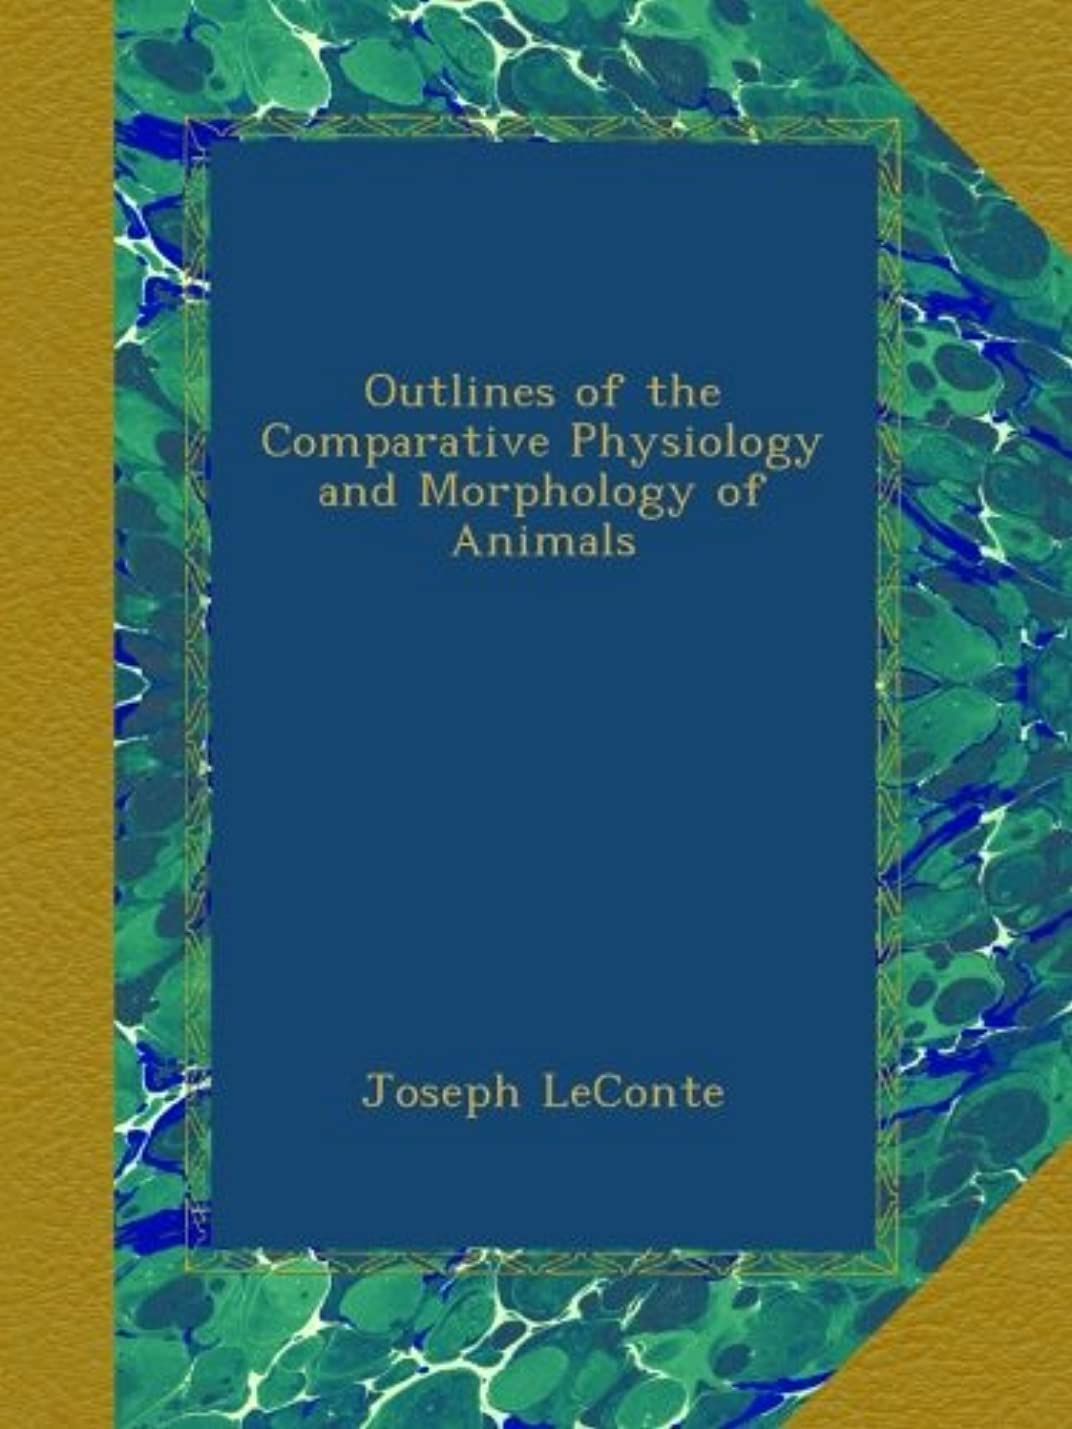 商品反毒不純Outlines of the Comparative Physiology and Morphology of Animals